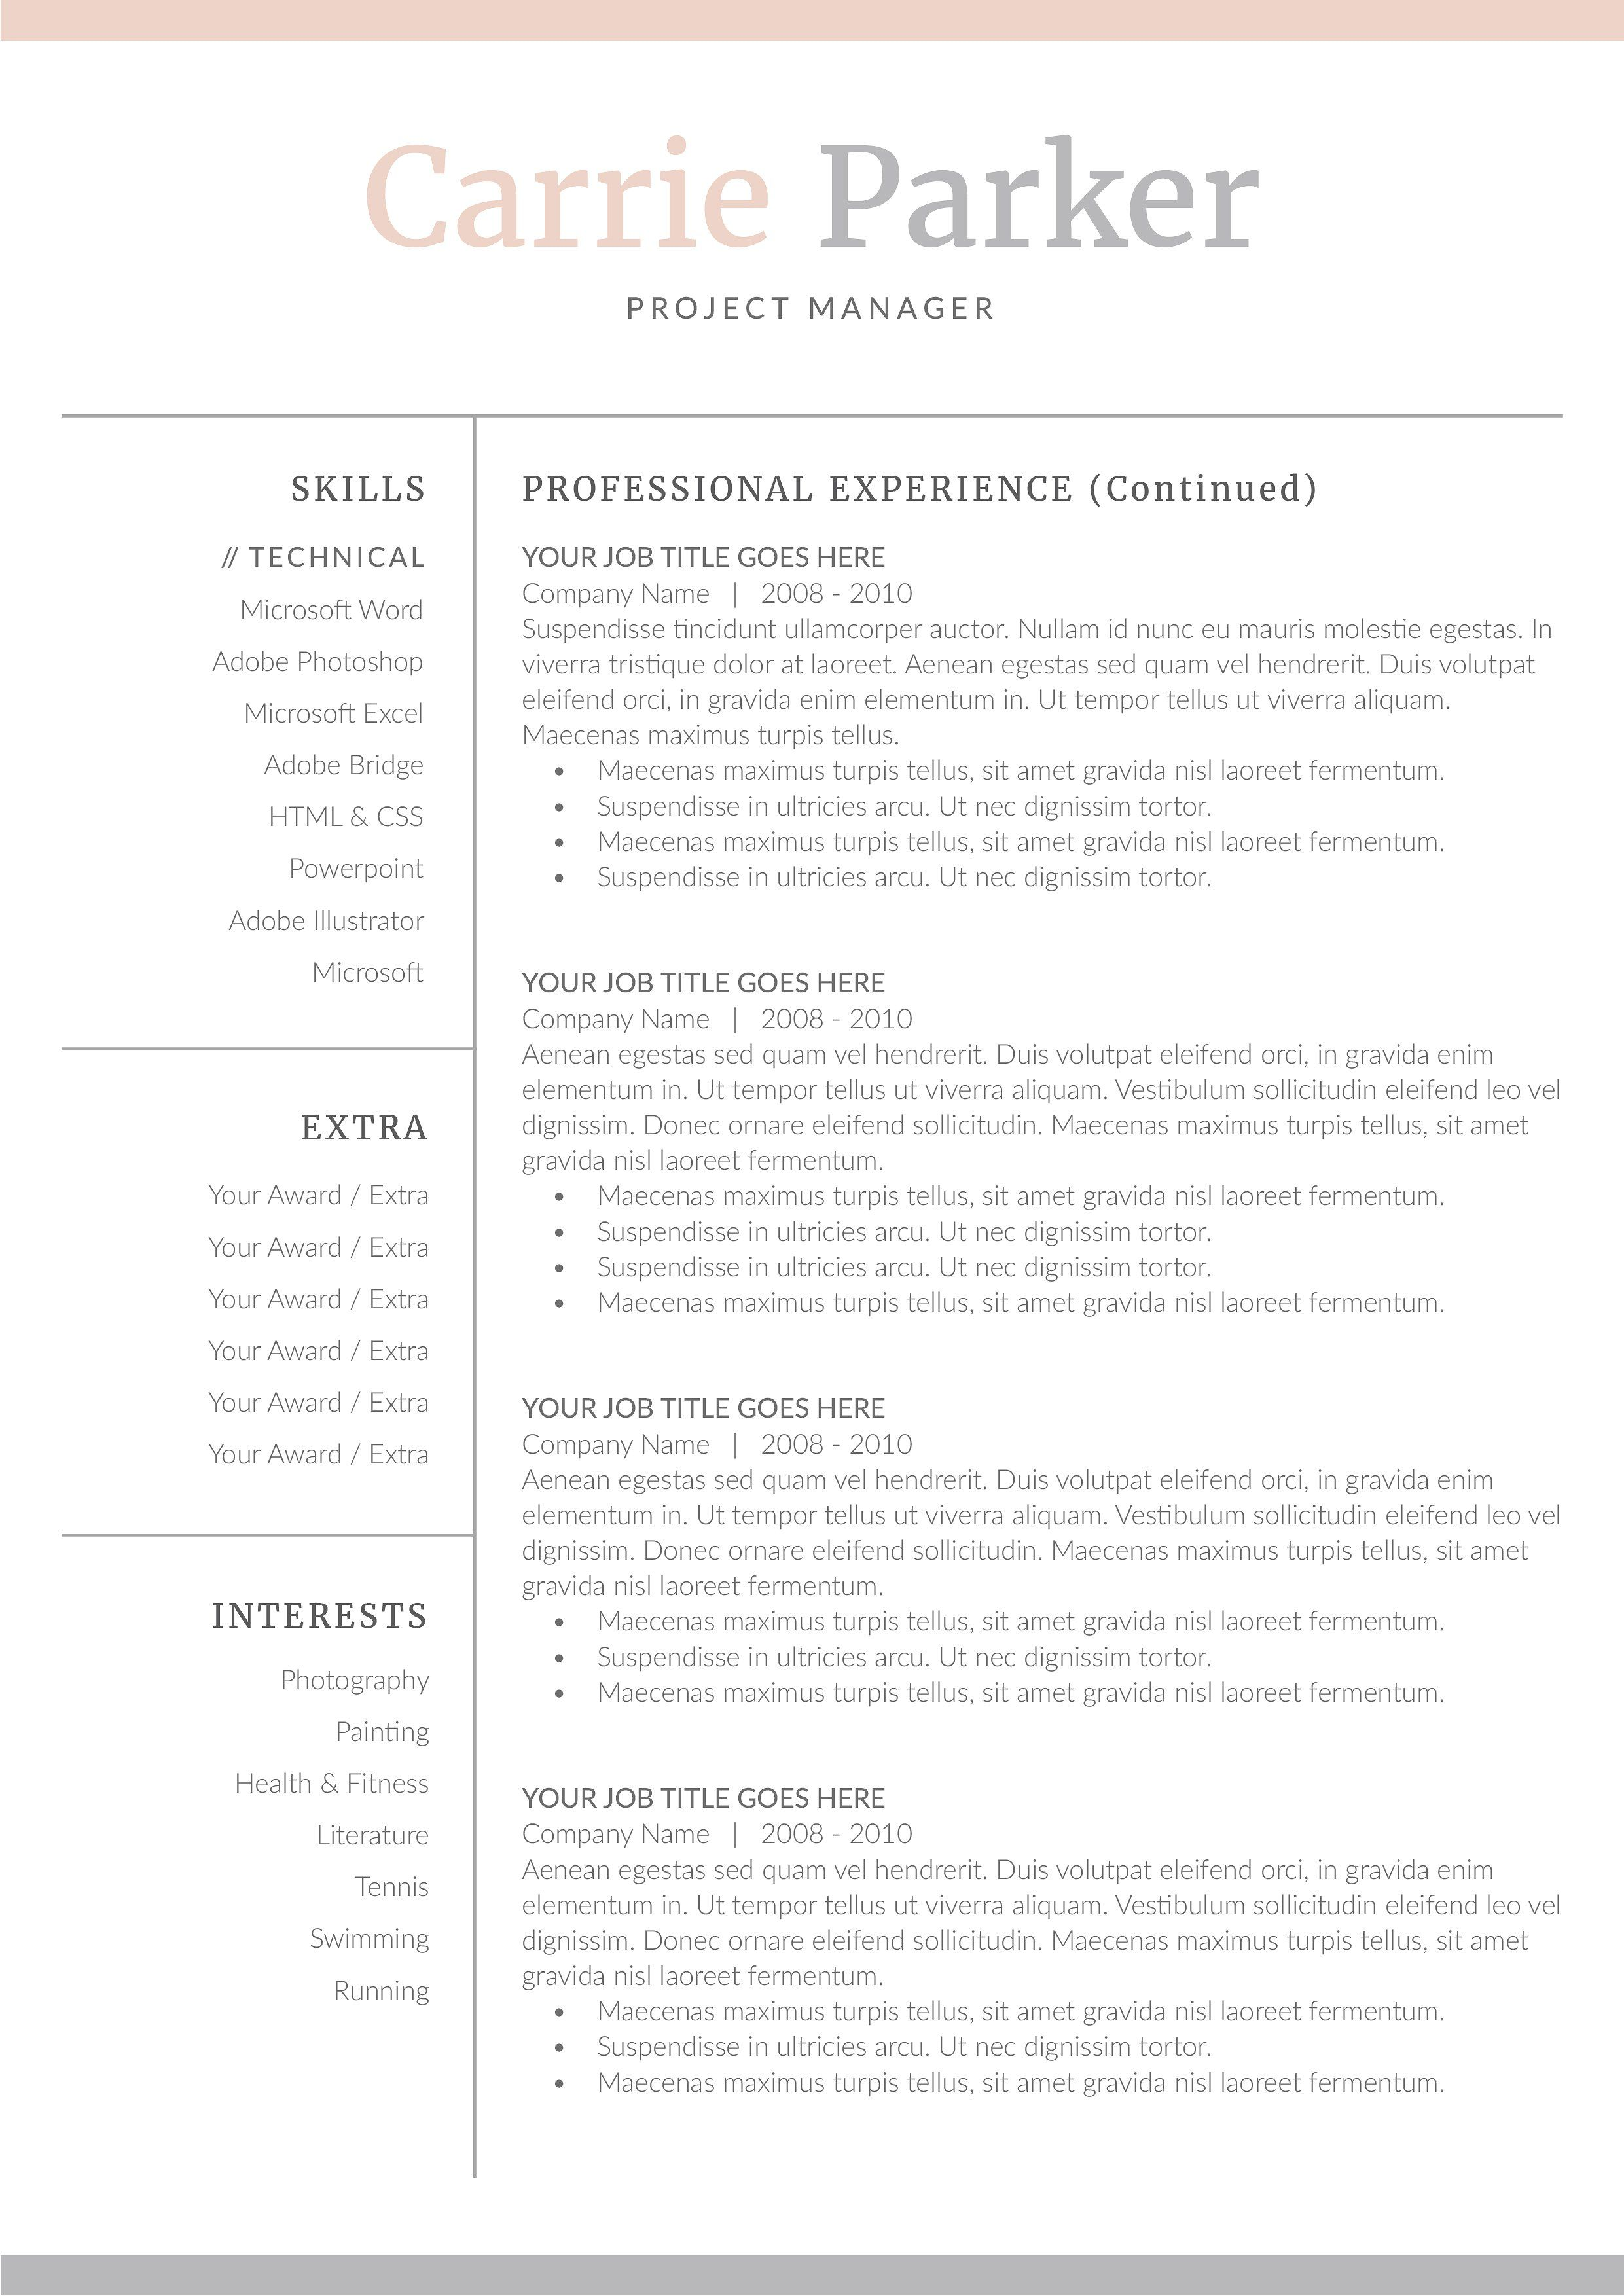 Resume Cover Letter Template Word Resume & Cover Letter Template  Resume Cover Letter Template